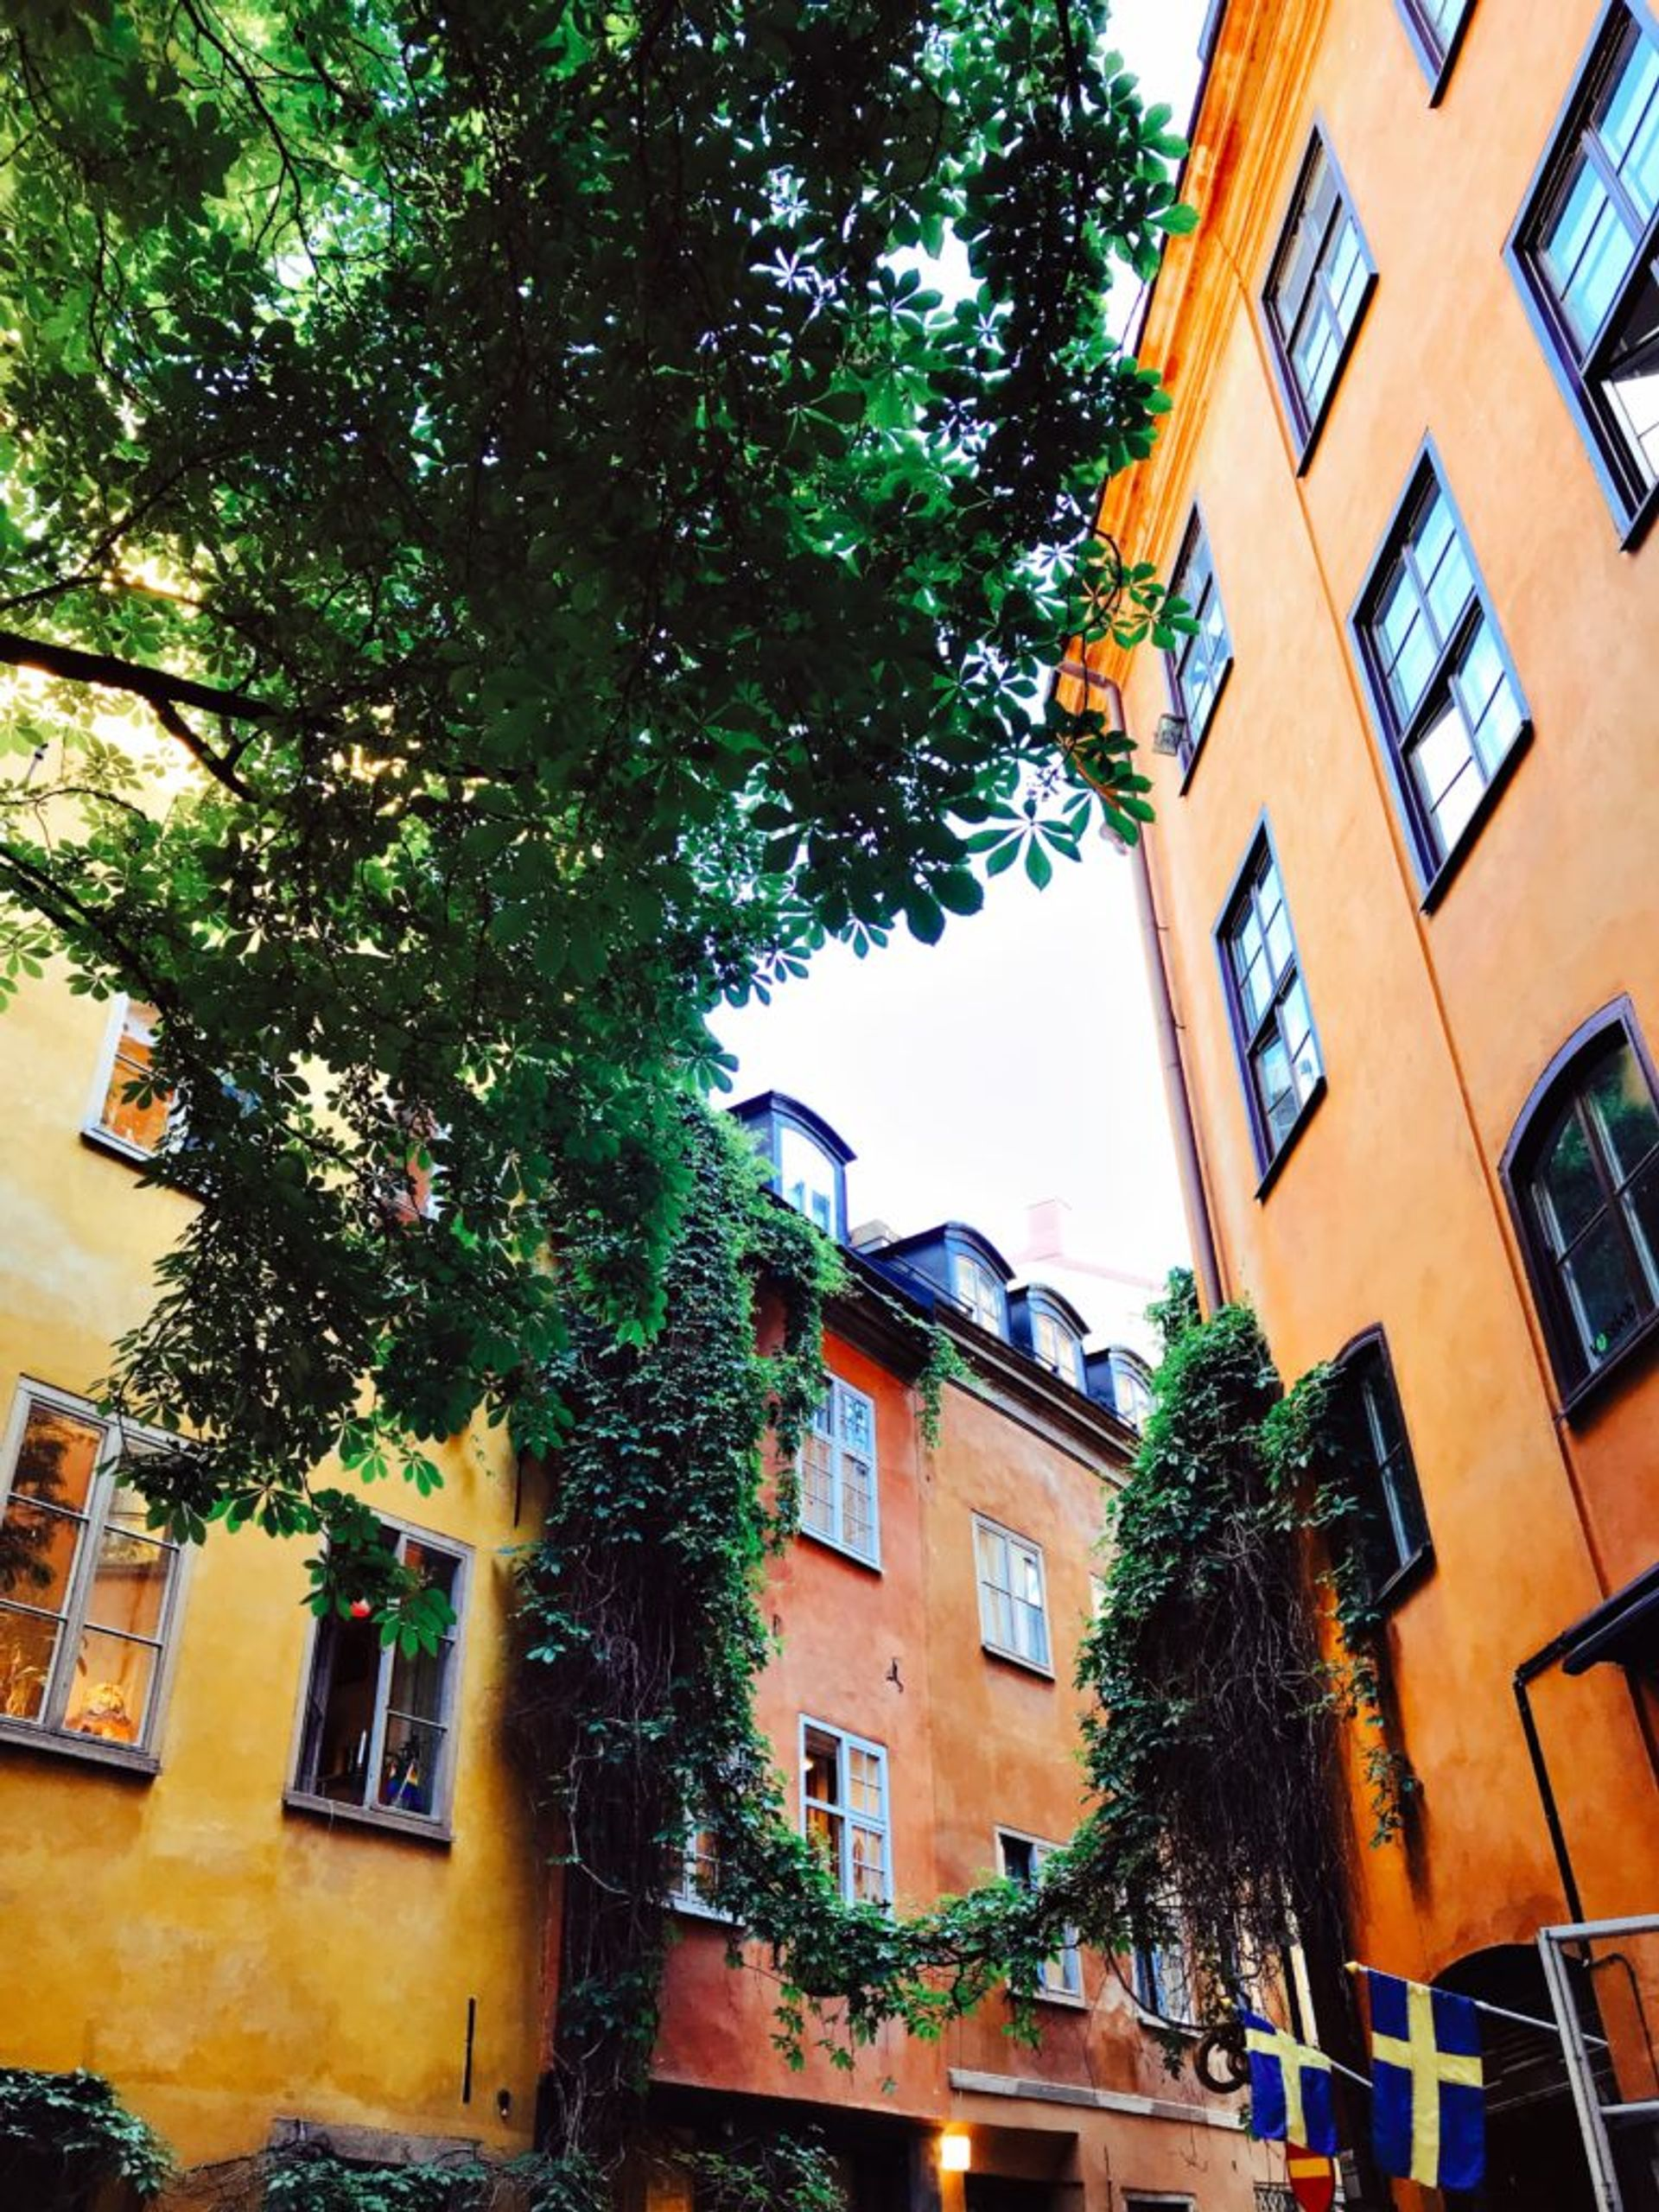 Orange and yellow buildings in Stockholm's Old Town.